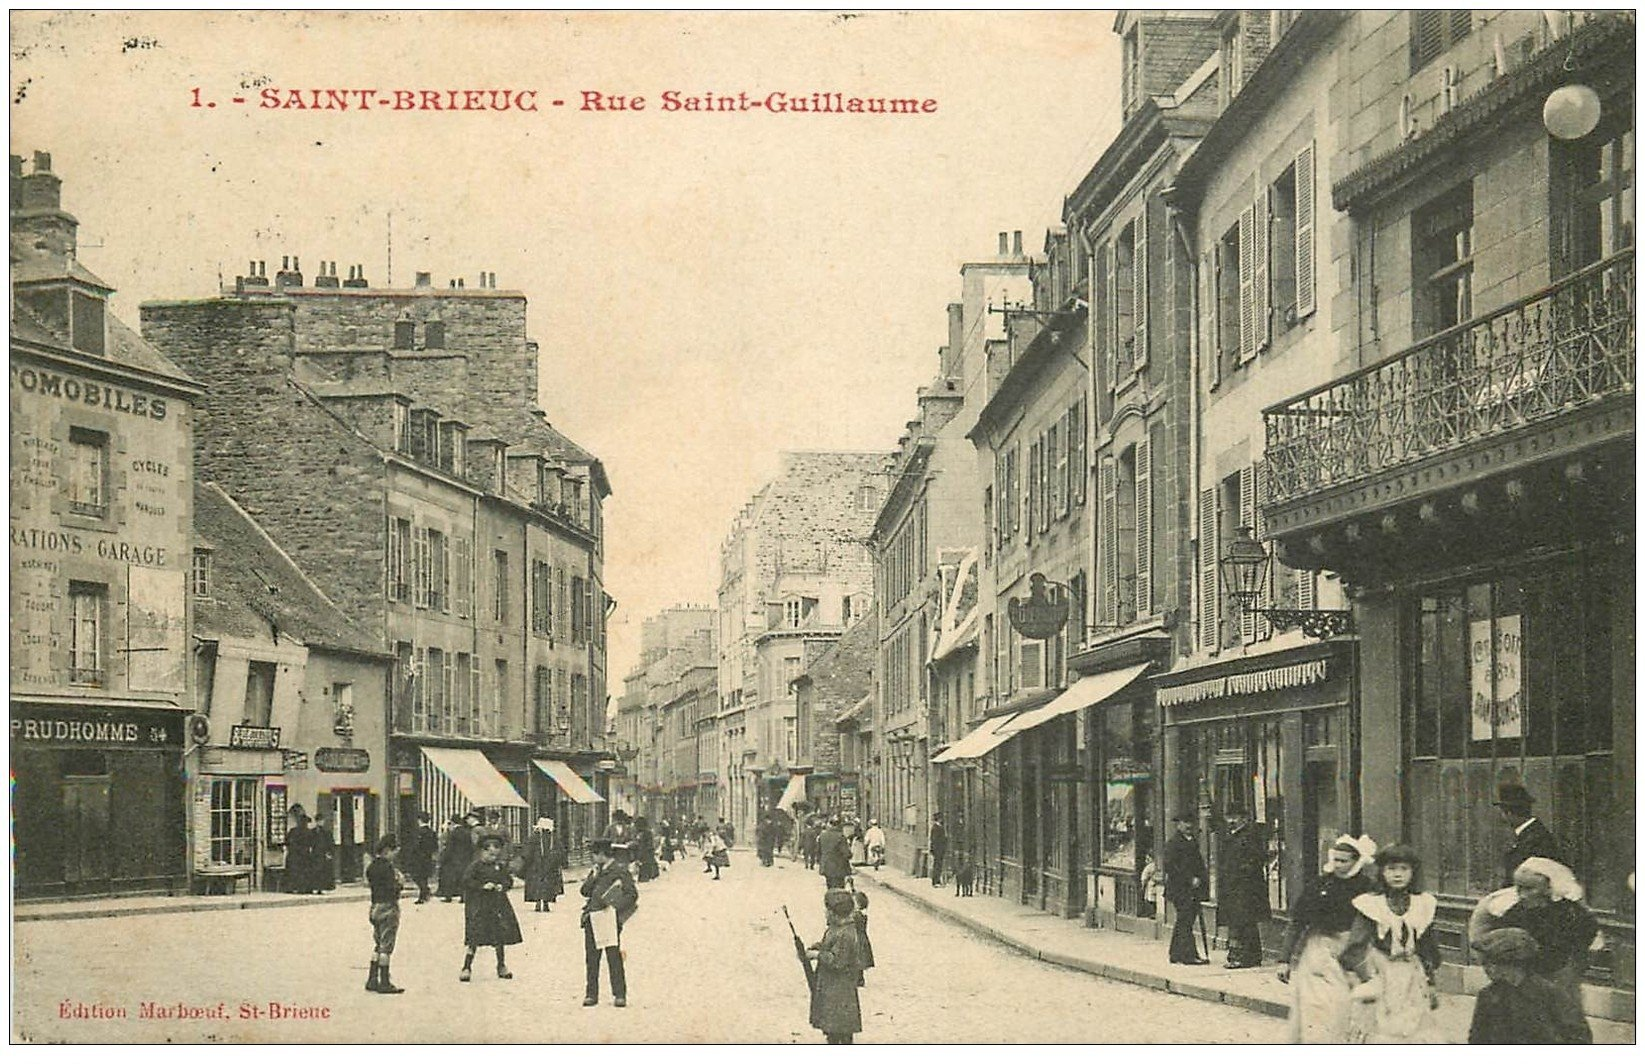 22 saint brieuc rue saint guillaume 1914 magasin journaux et cartes postales jeune vendeur de. Black Bedroom Furniture Sets. Home Design Ideas